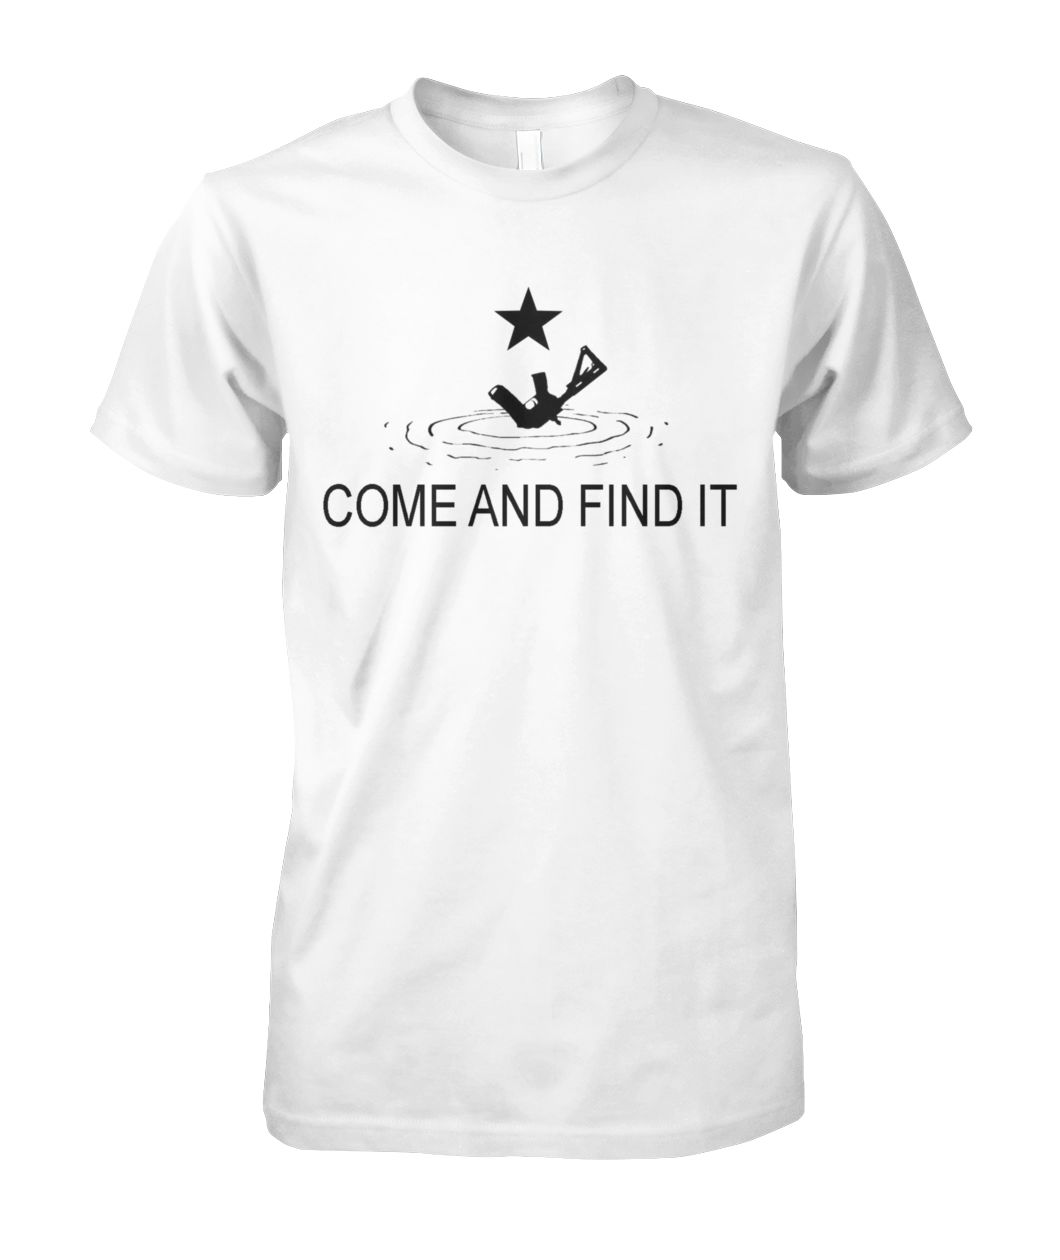 Come and Find It Tee - A Tragic Boating Accident